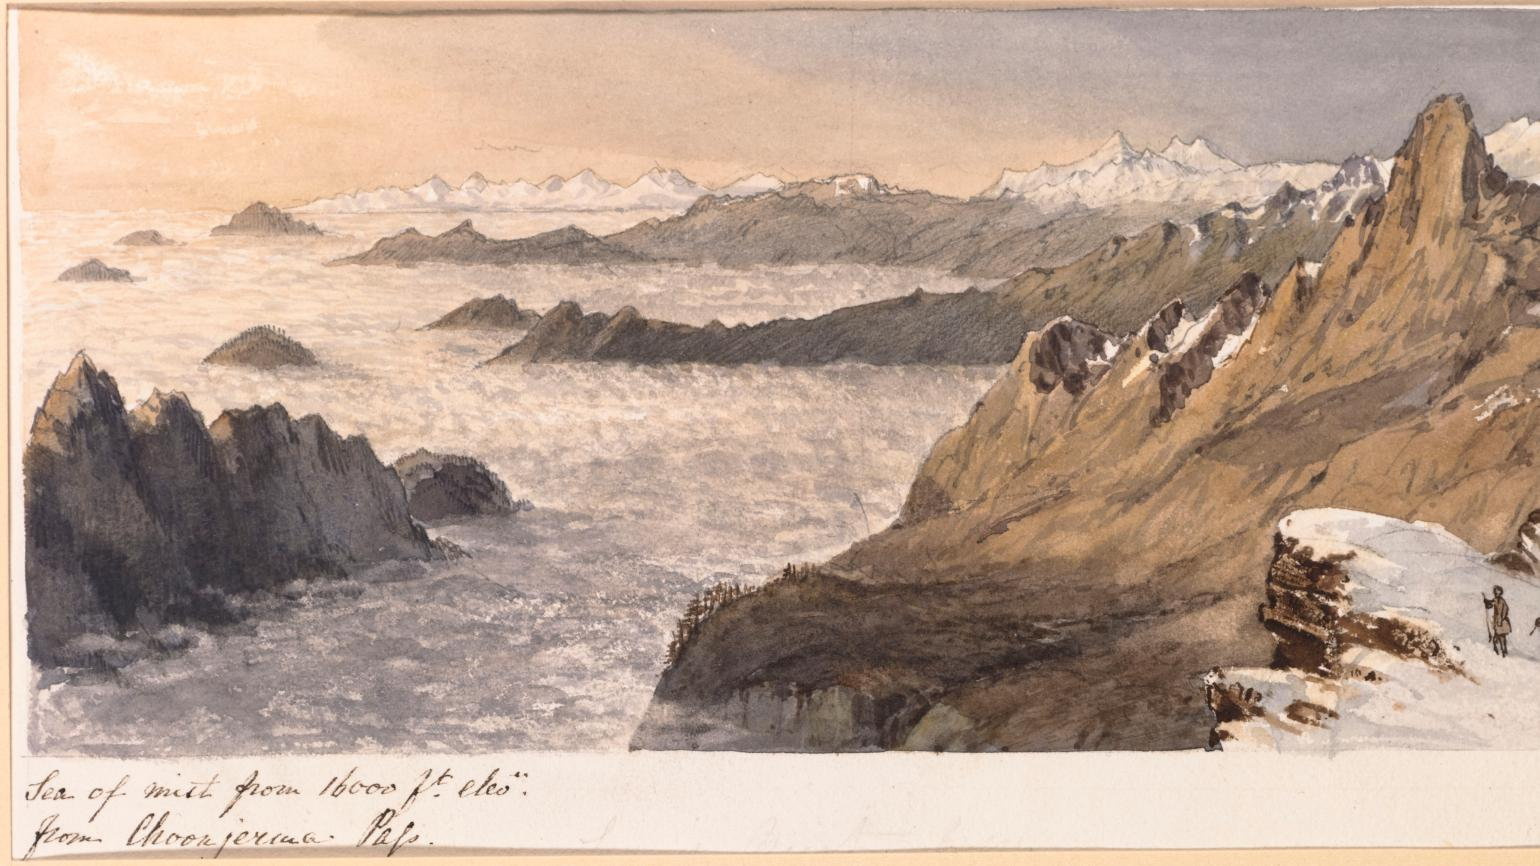 Watercolour illustration of Mount Everest by Walter Hood Fitch, c. 1848